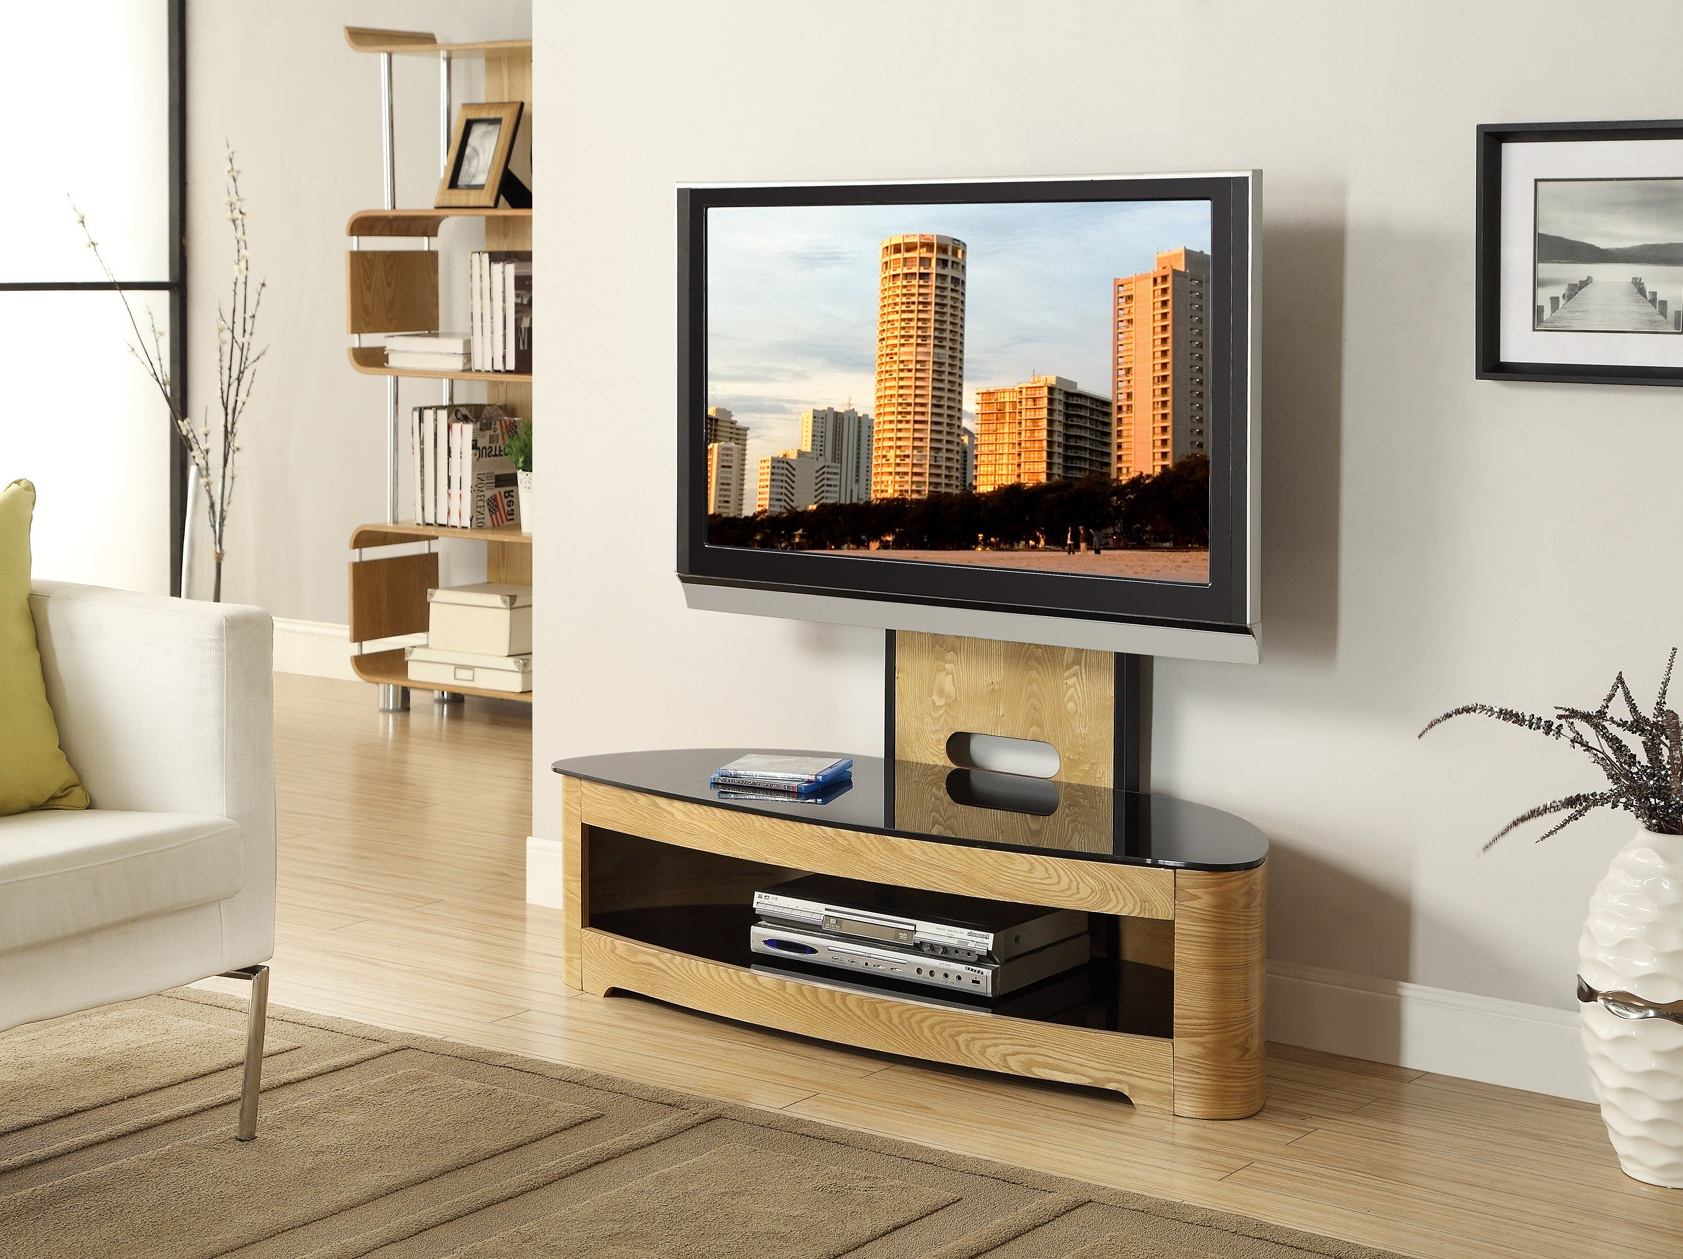 Bedroom Tv Stand With Drawers 40 Inch Tall Stands For Flat Screens In Most Up To Date Bedroom Tv Shelves (View 4 of 20)